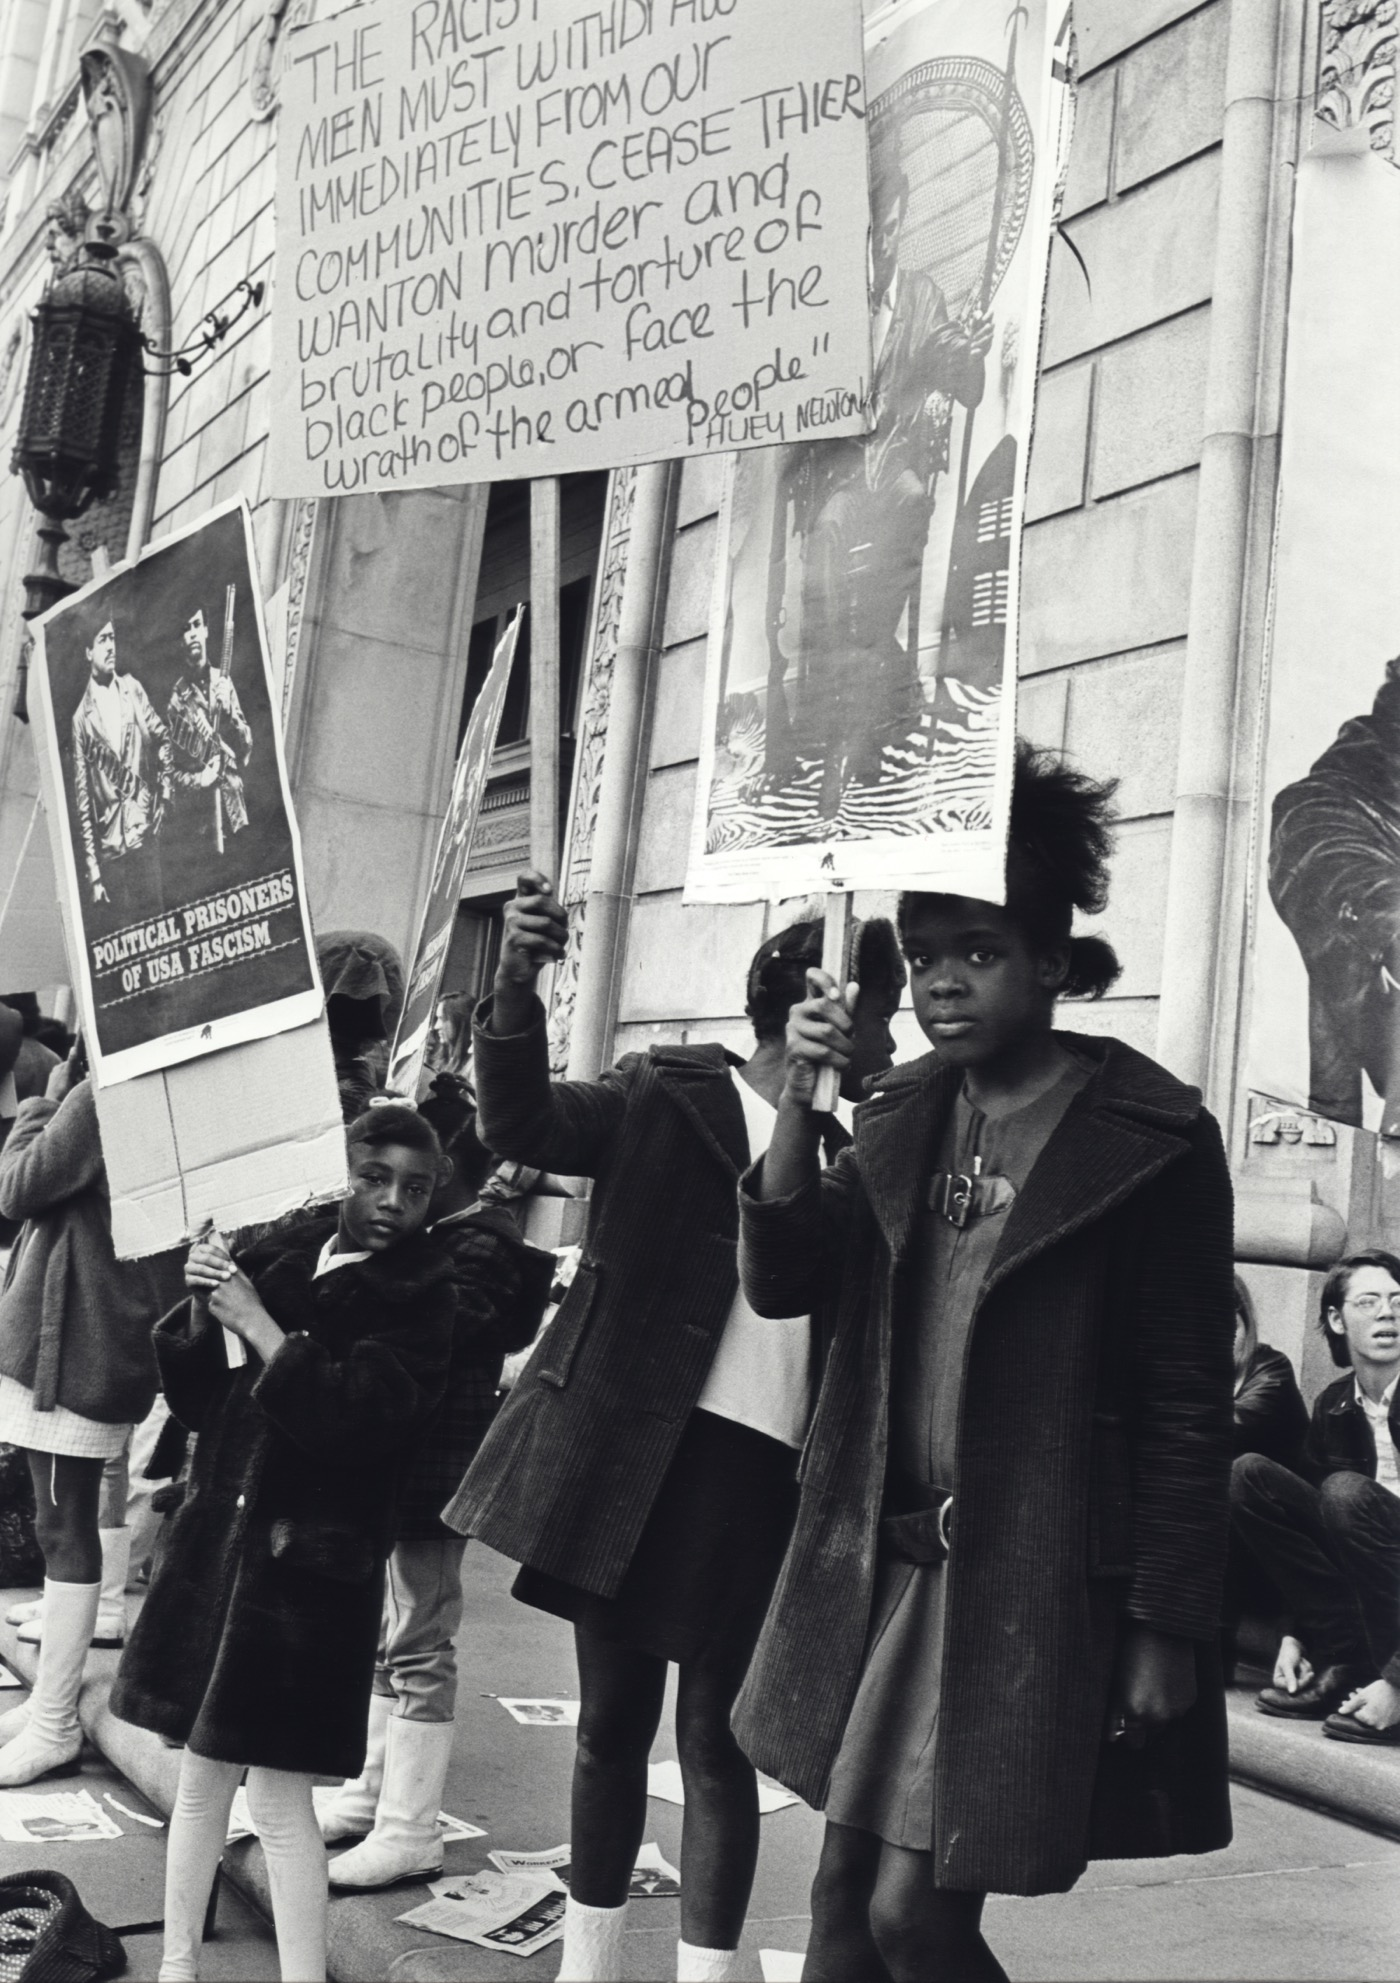 Stephen Shames San Francisco, California, USA: Children at a Free Huey, Free Bobby rally in front of the Federal Building., February, 1970 Gelatin silver print 20 x 16 in Signed and numbered by photographer verso; Edition of 8 + 2 Aps